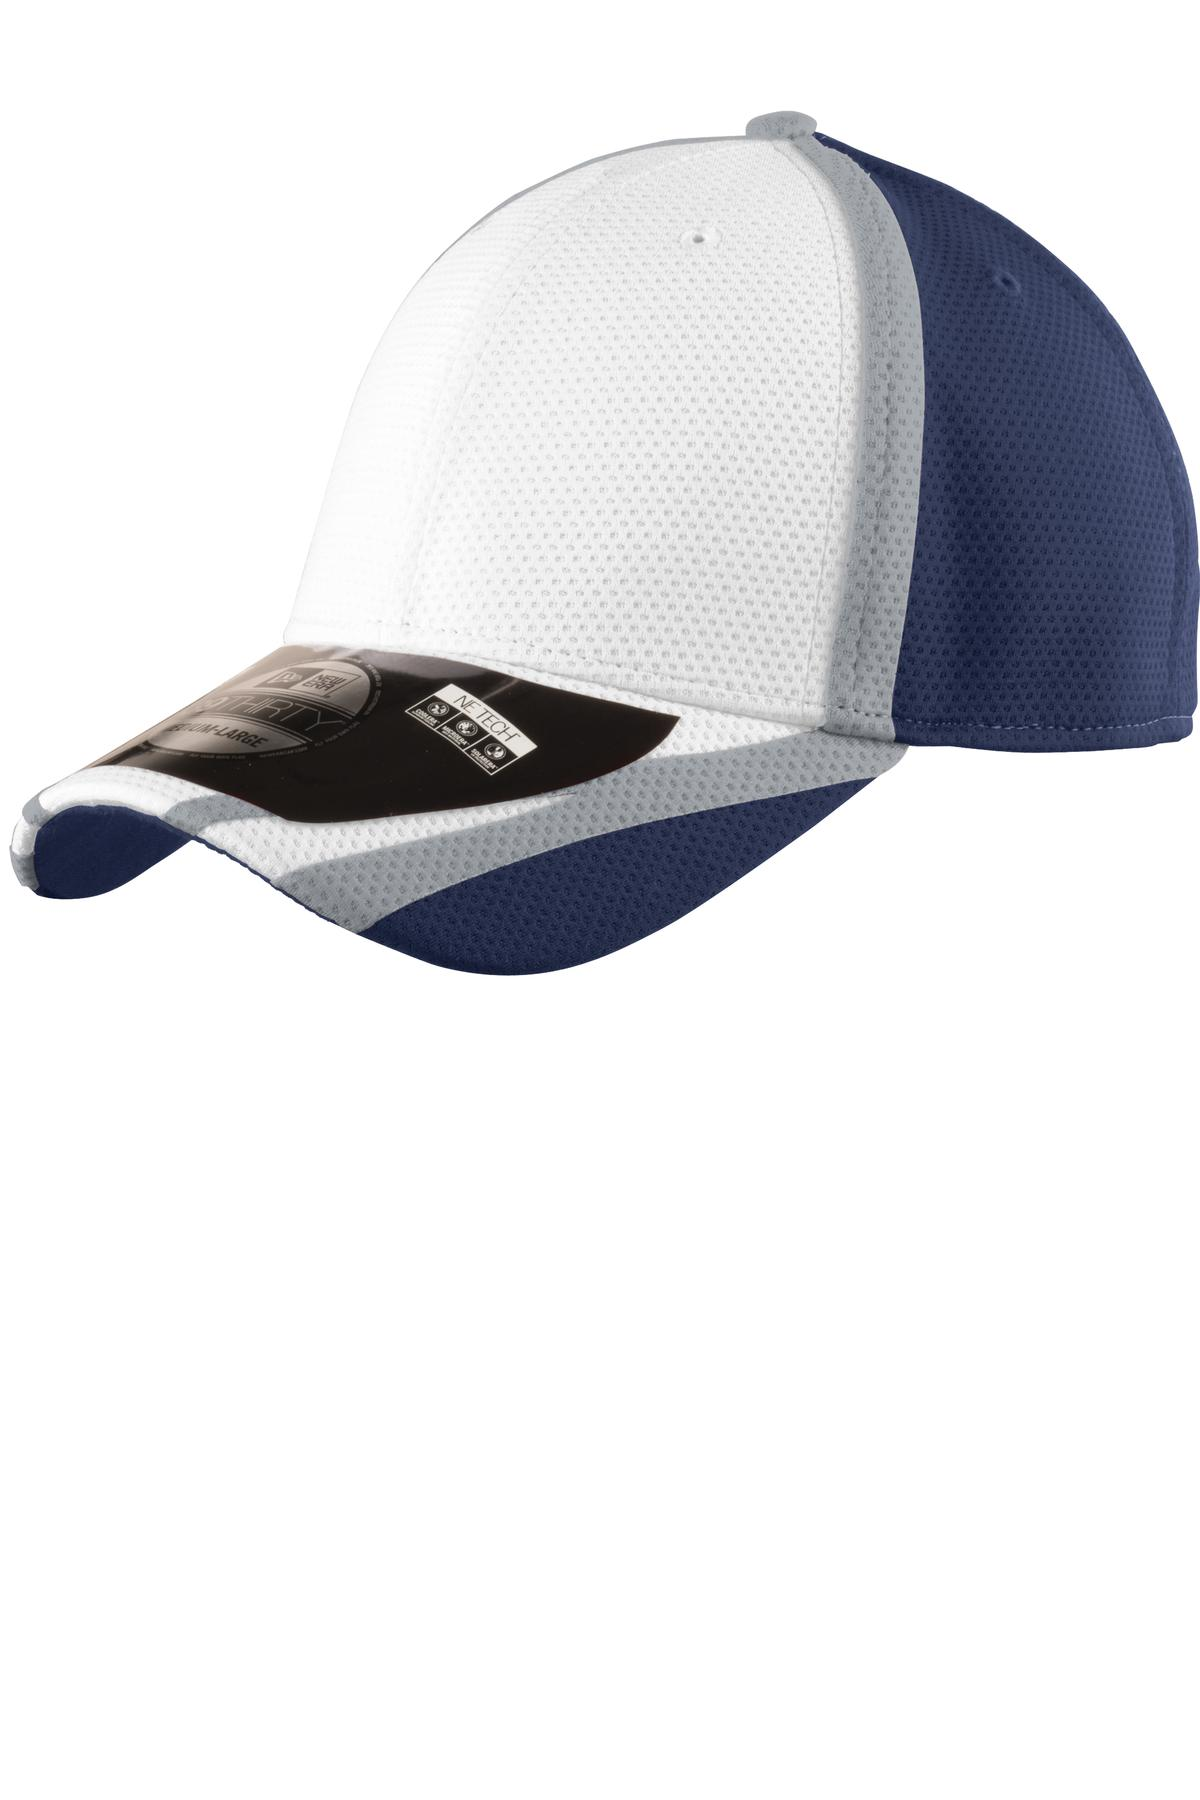 New Era® NE700 - Gridiron Training Cap